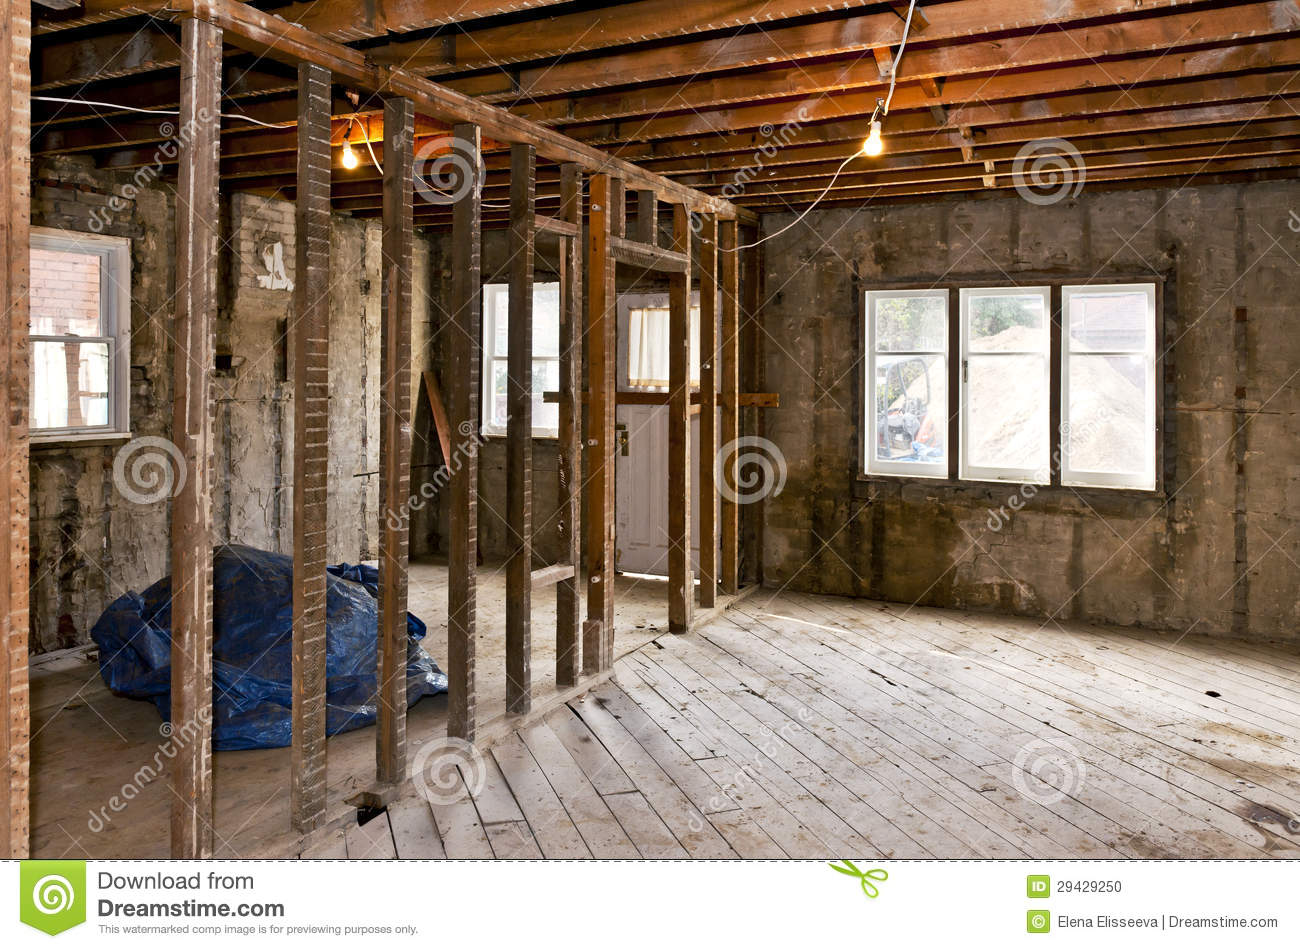 Home interior gutted for renovation stock photo image for Interior site